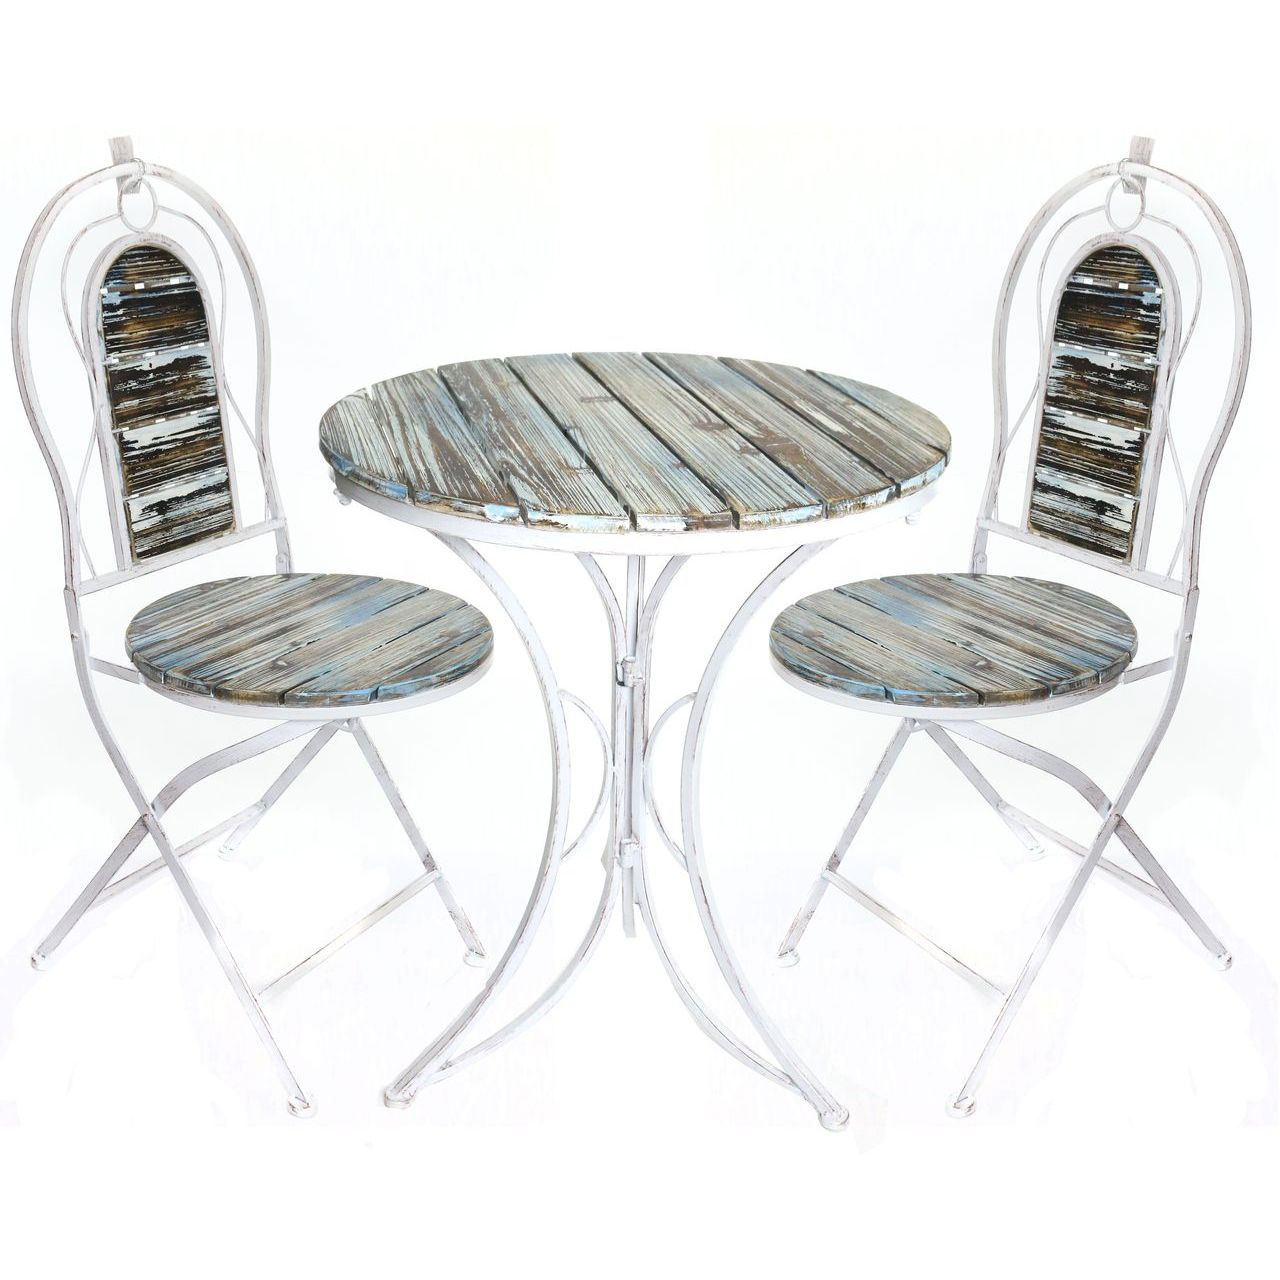 Alpine MZP278A Weathered Wood Table and Two Chairs Bistro Set